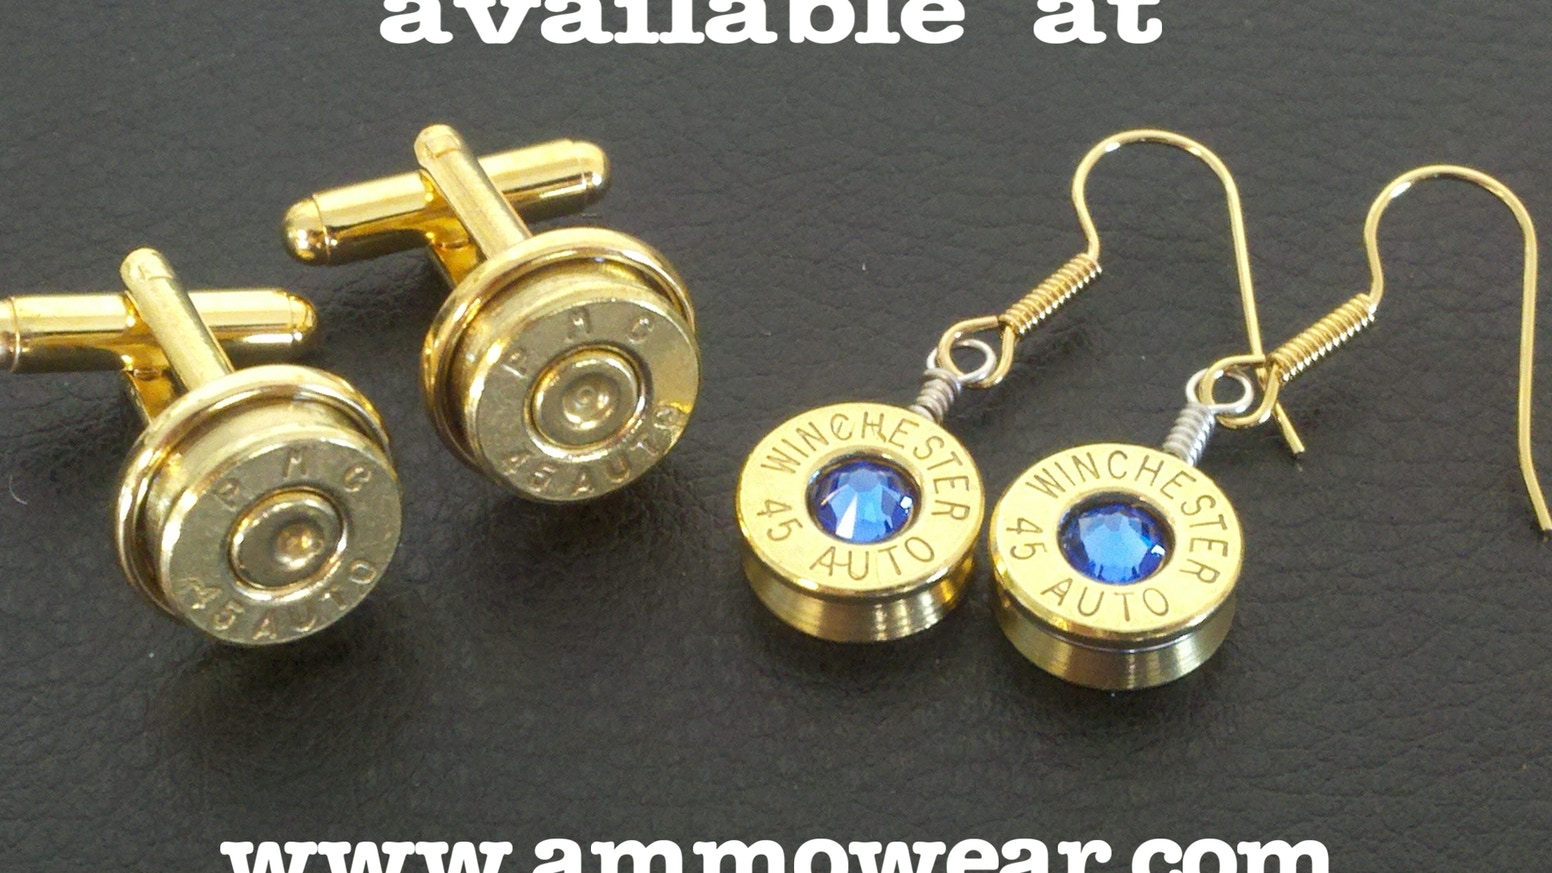 Ammo Wear Hand Crafted Bullet Casing Jewelry By Byron Bartlett